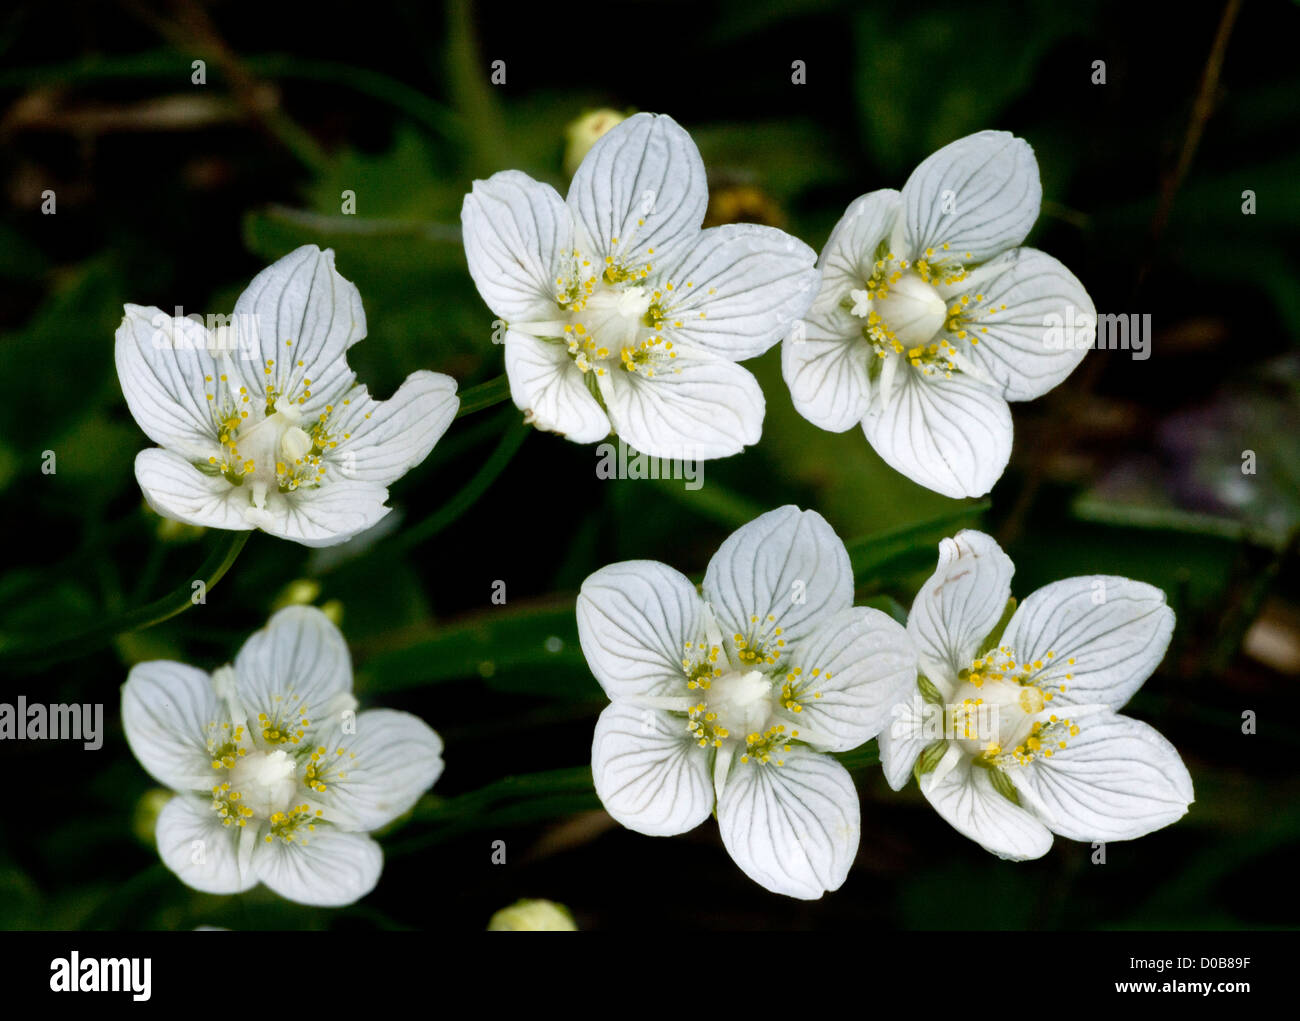 Grass of Parnassus (Parnassia palustris) in flower, close-up, late summer. - Stock Image